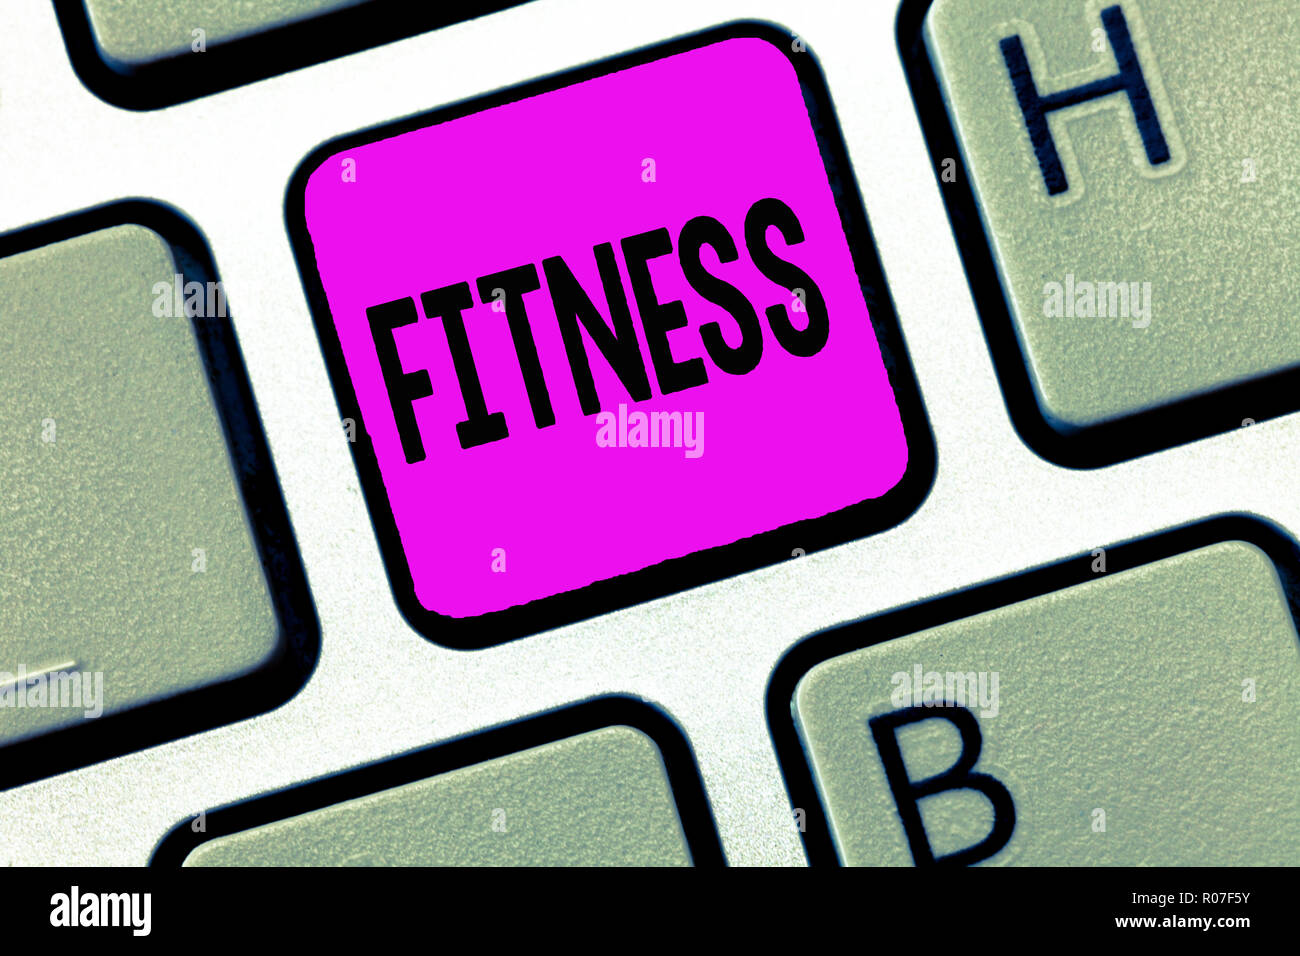 Word writing text Fitness. Business concept for Condition physically fit healthy Training Workout Suitable for role. - Stock Image